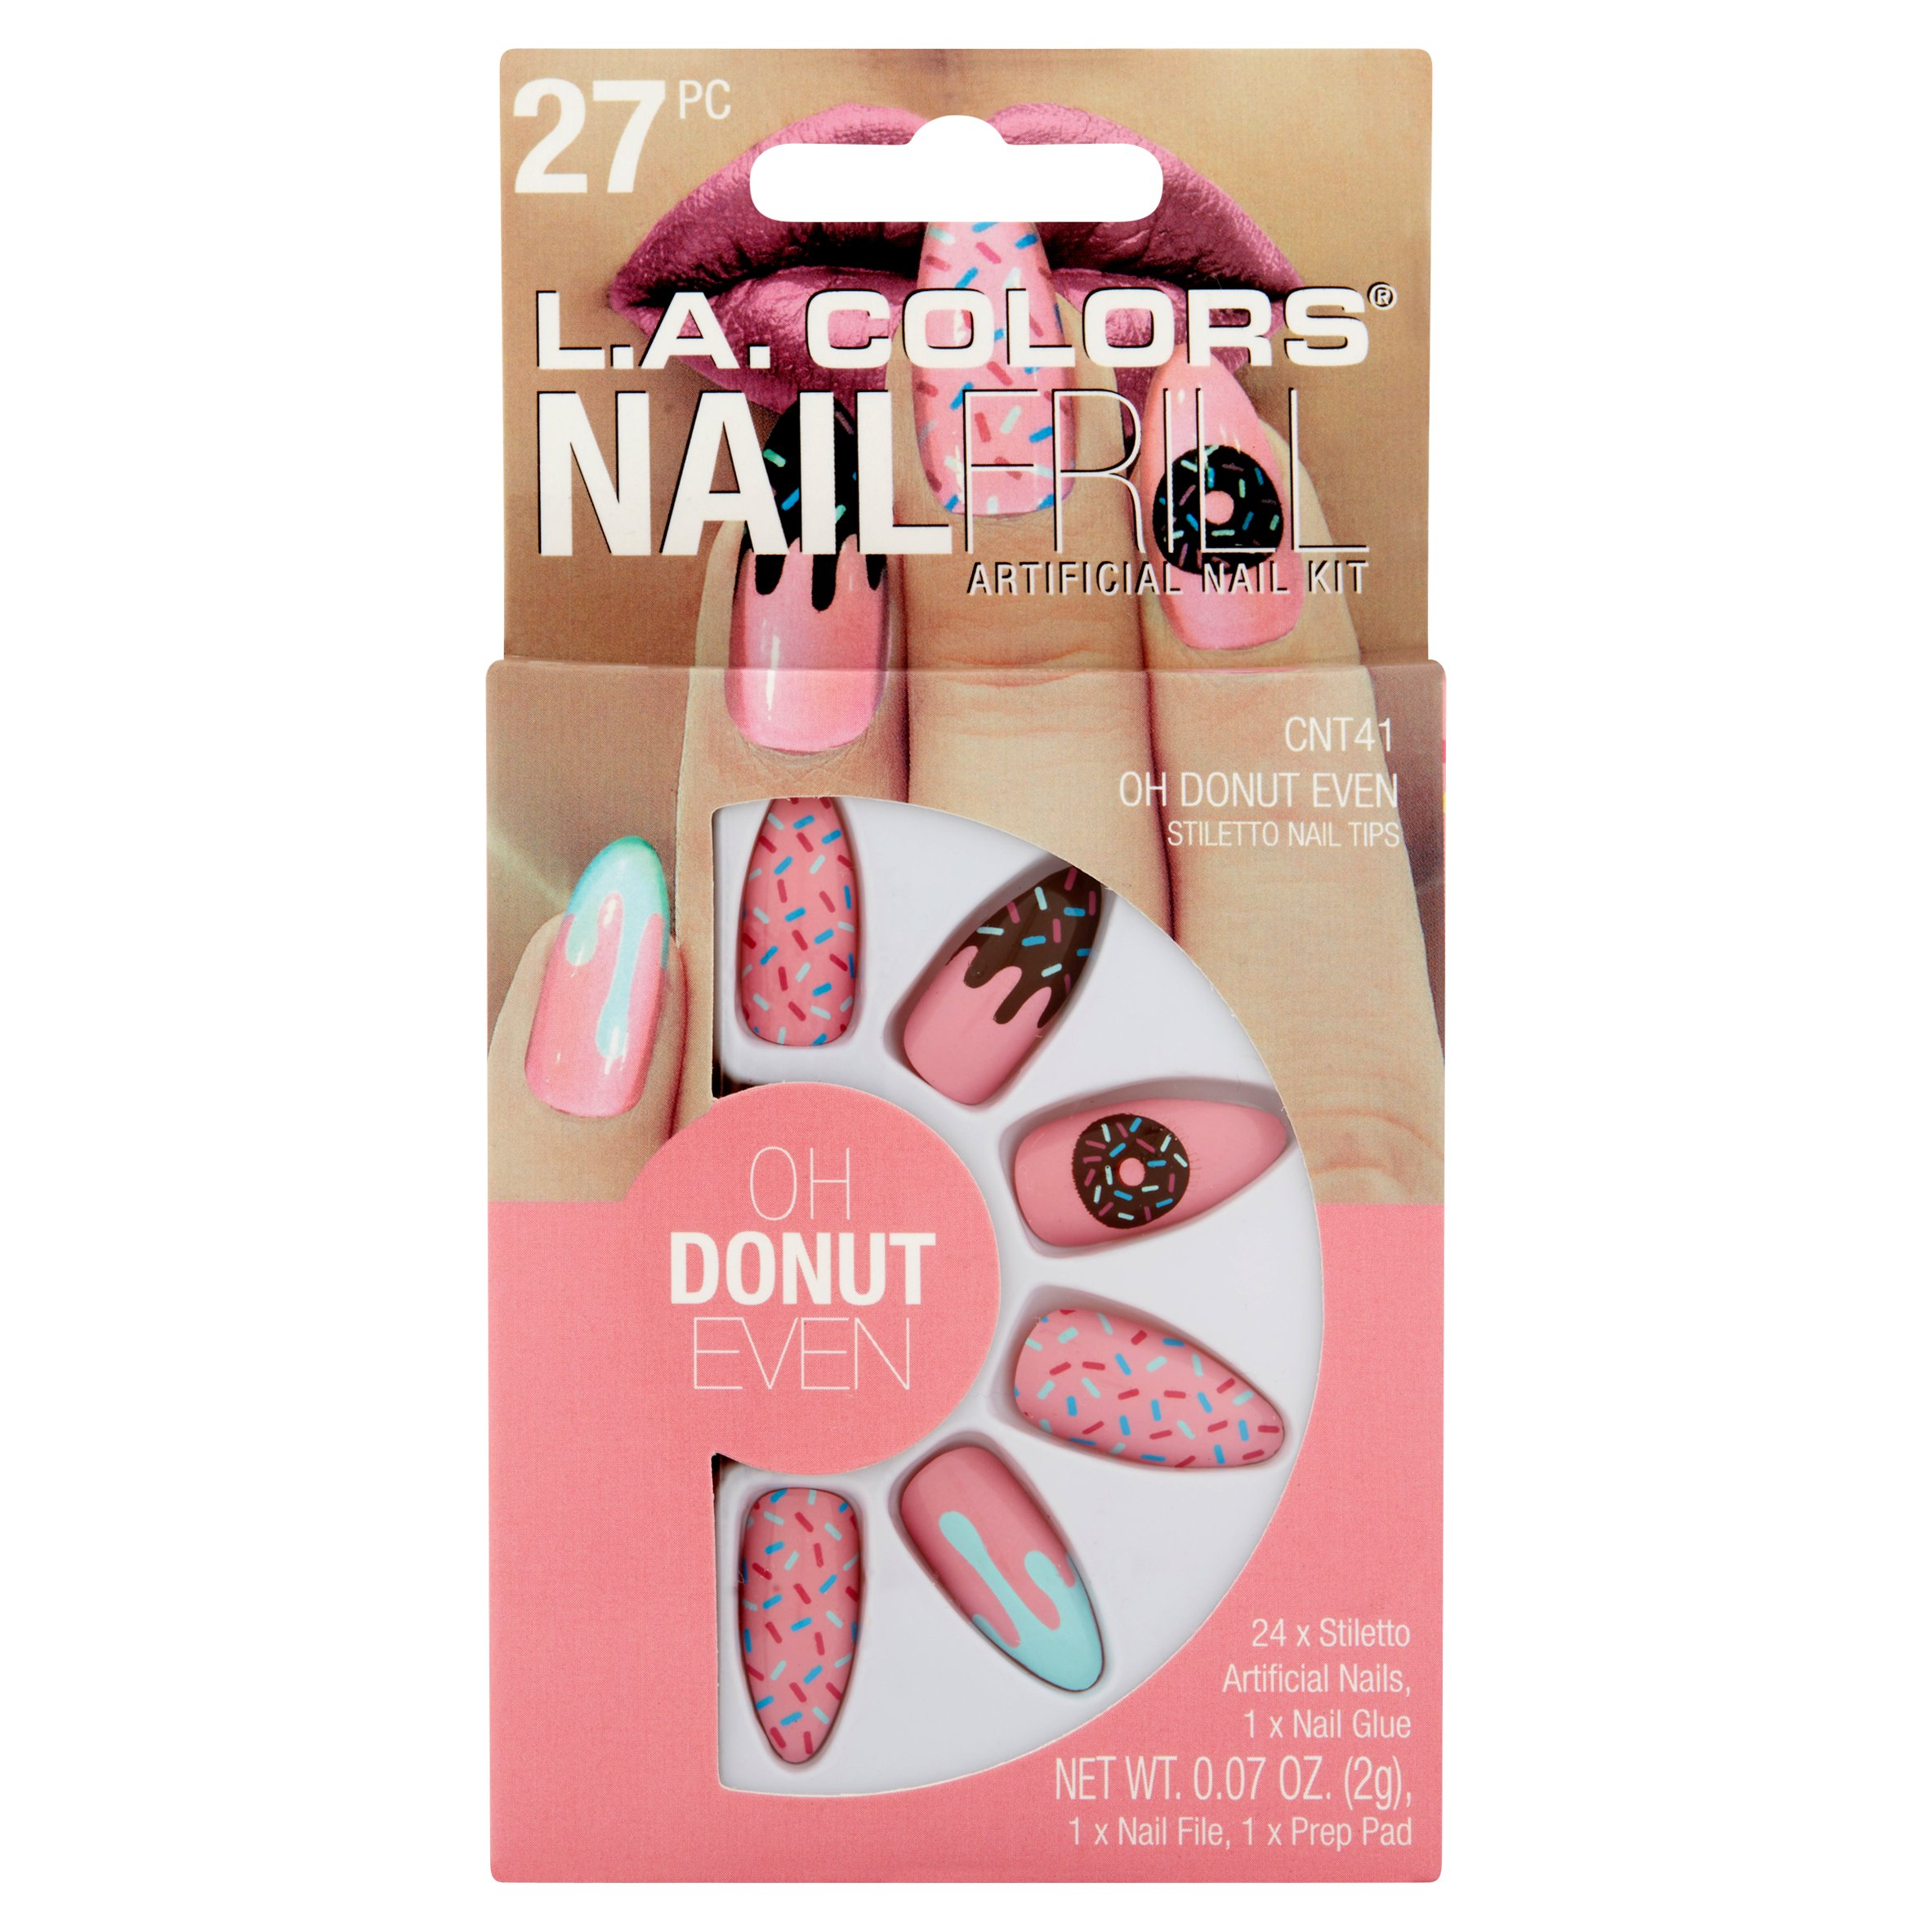 L.A. Colors Nail Frill Artificial Nail Kit, Oh Donut Even, 27 pc ...